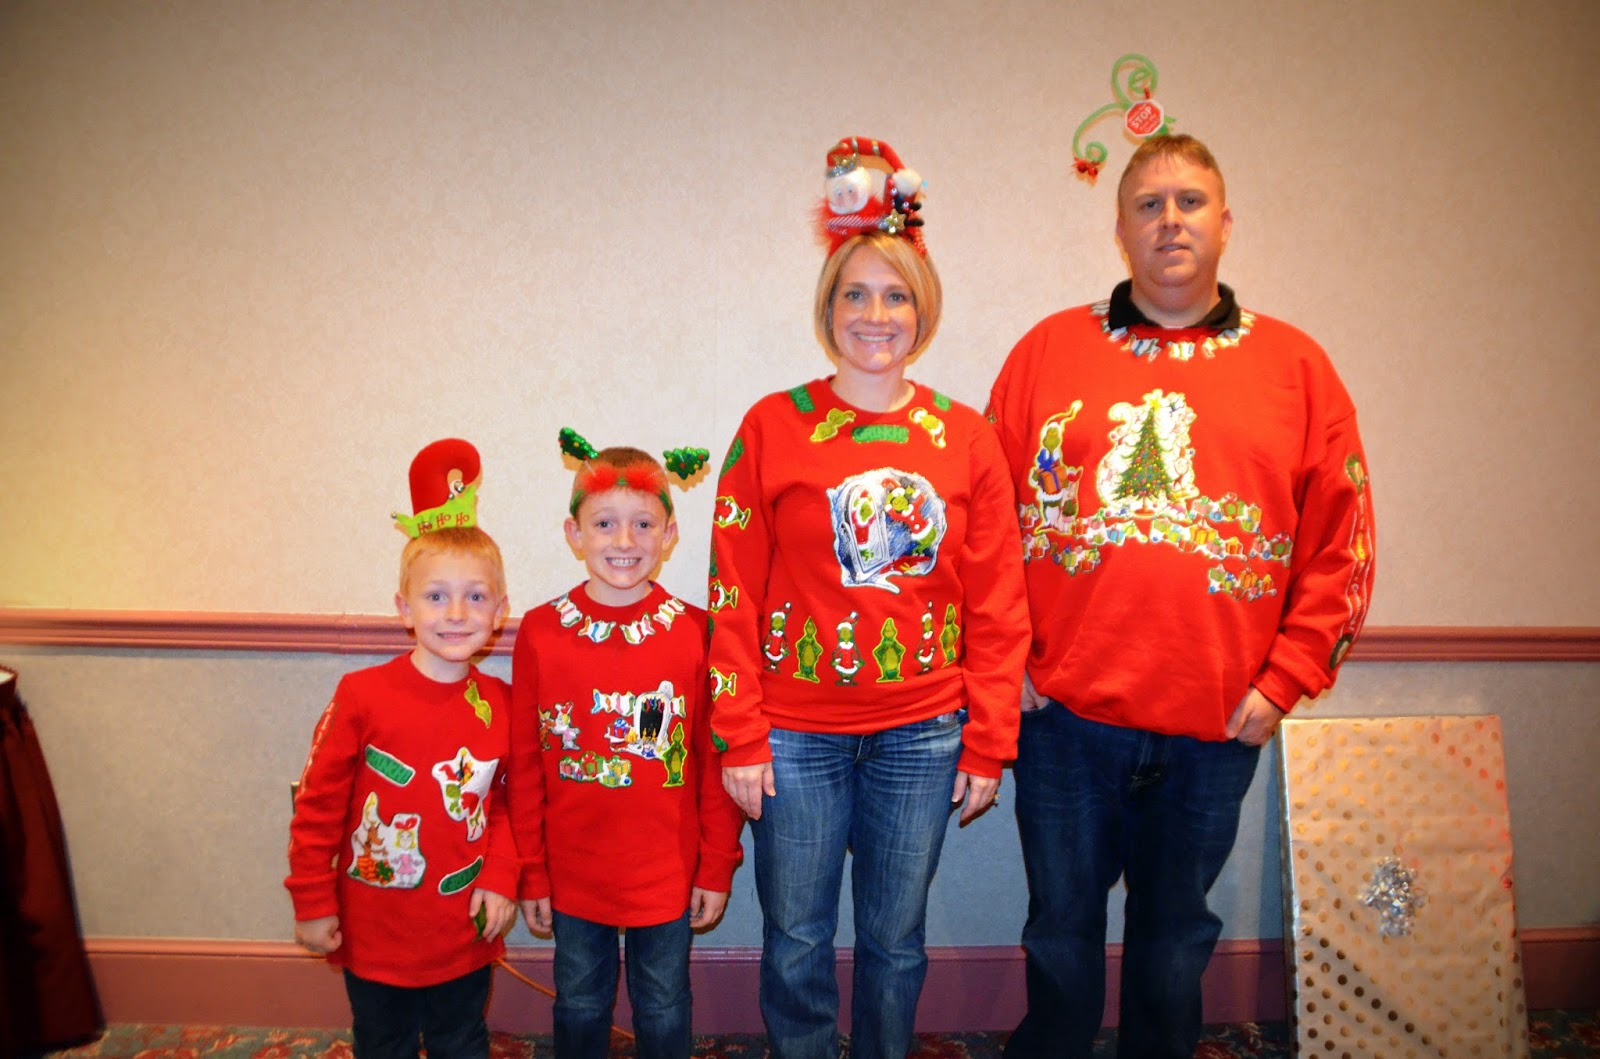 the bane family ugly christmas sweater contest we all wore handmade grinch shirts they told the story of how the grinch stole christmas - How The Grinch Stole Christmas Sweater